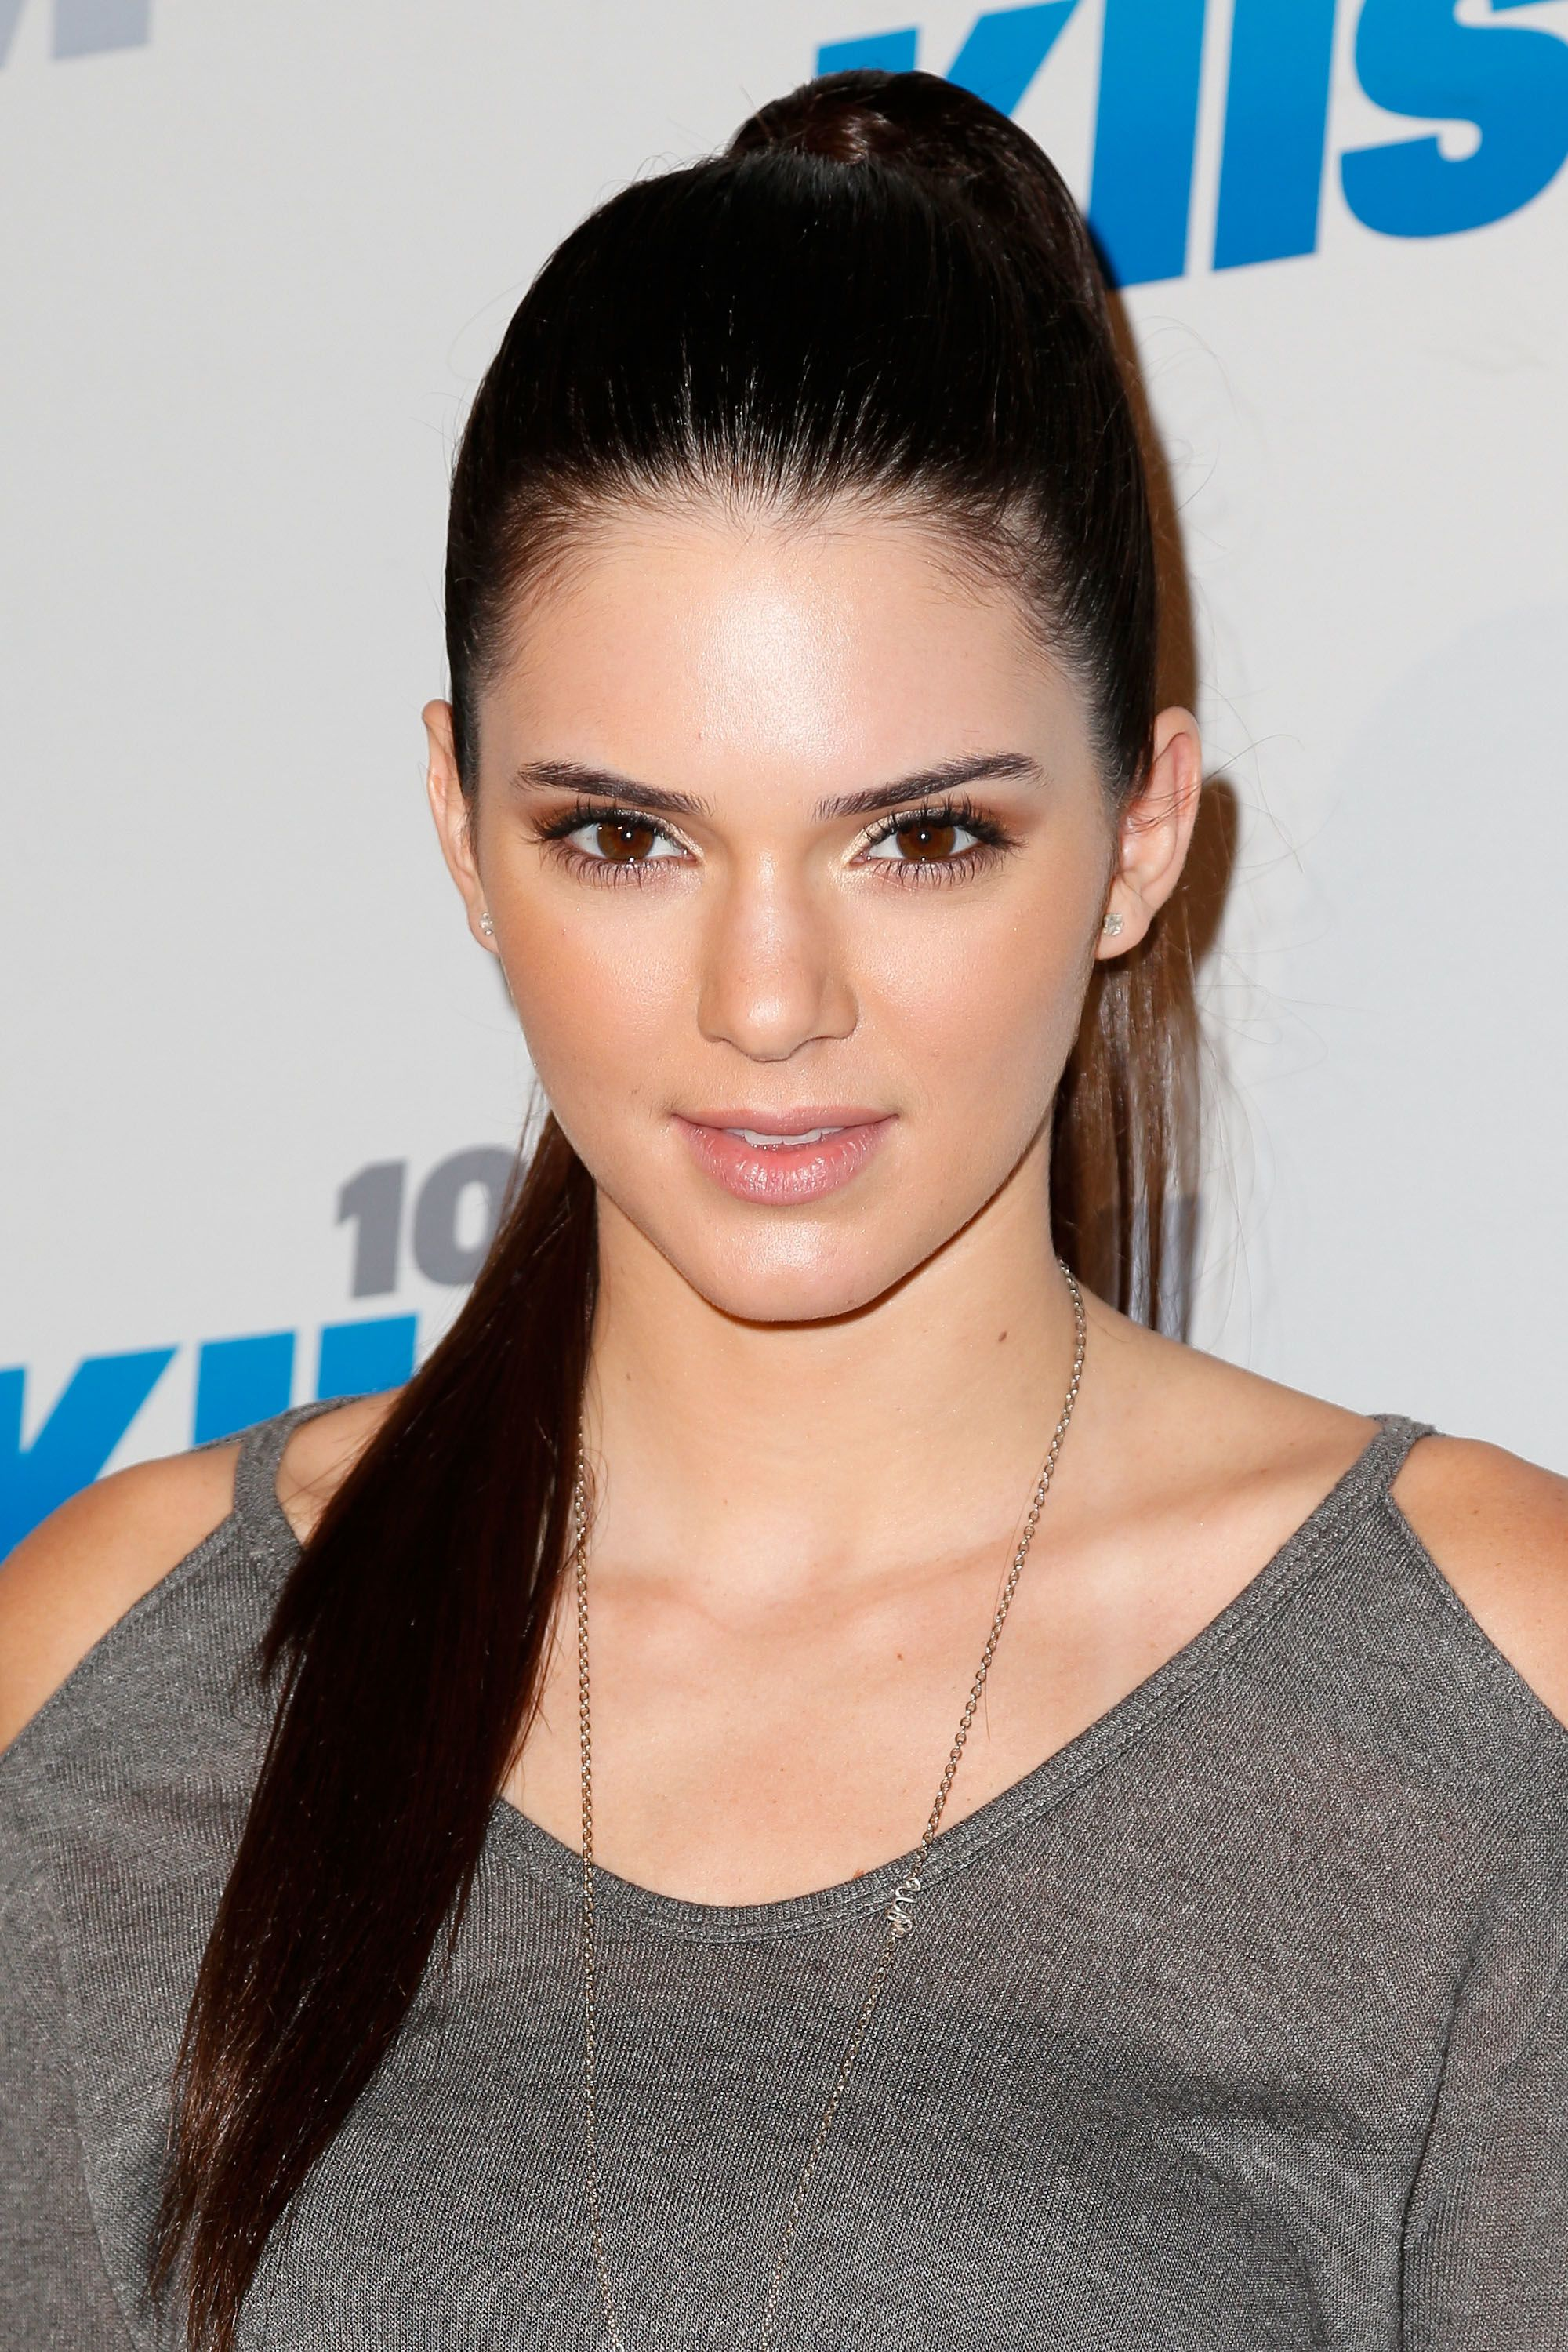 Kendall Jenner at the 2012 KIIS FM Jingle Ball.